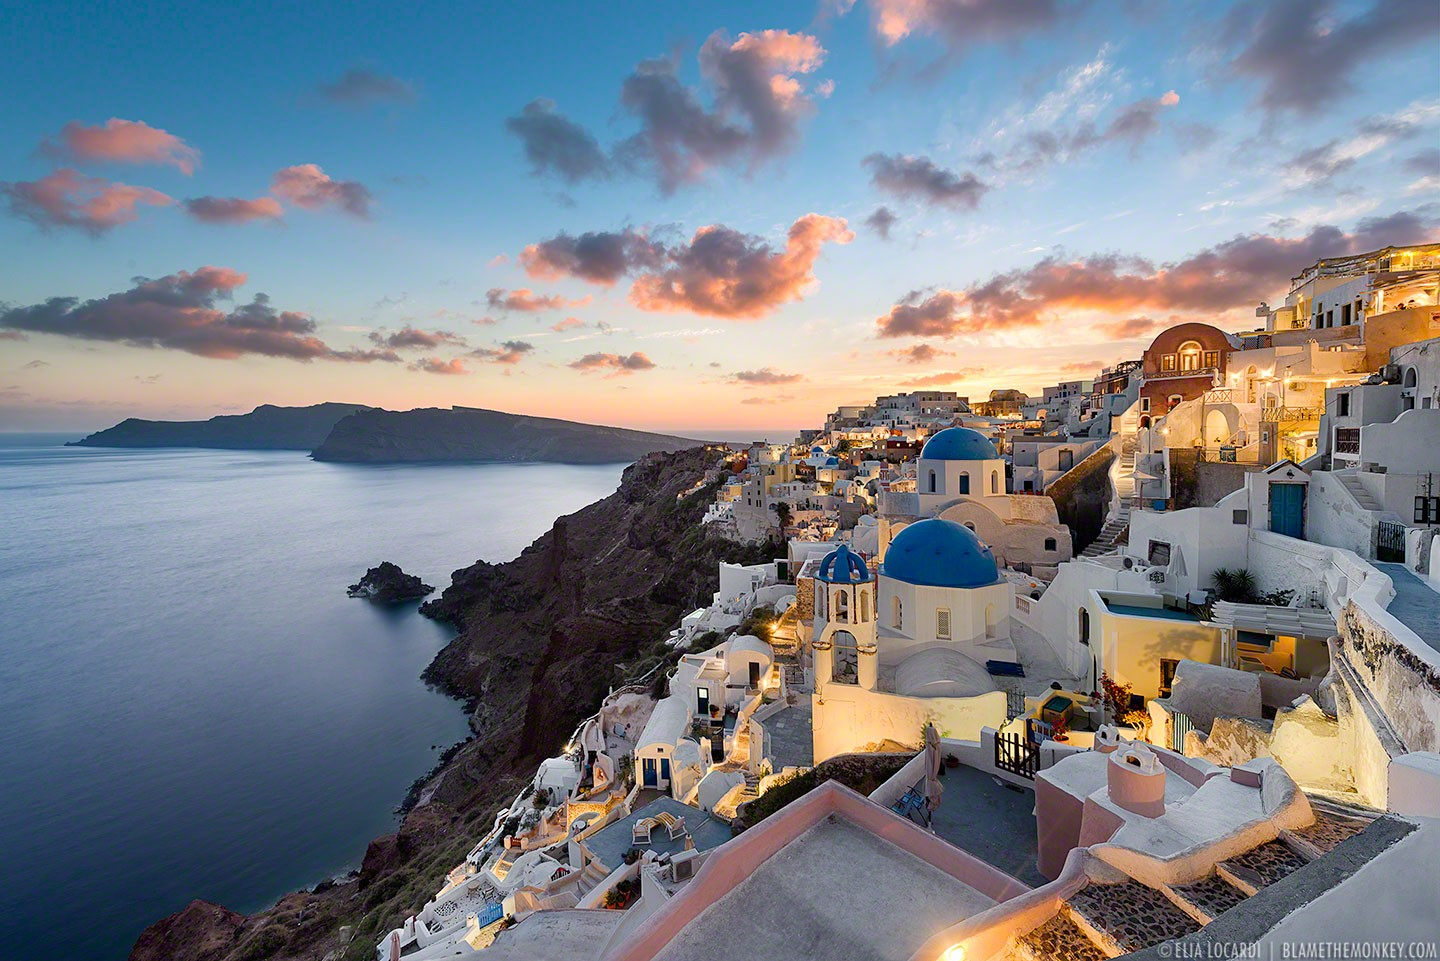 An astoundingly beautiful sunset in Oia Santorini, one of the most beautiful places on Earth.